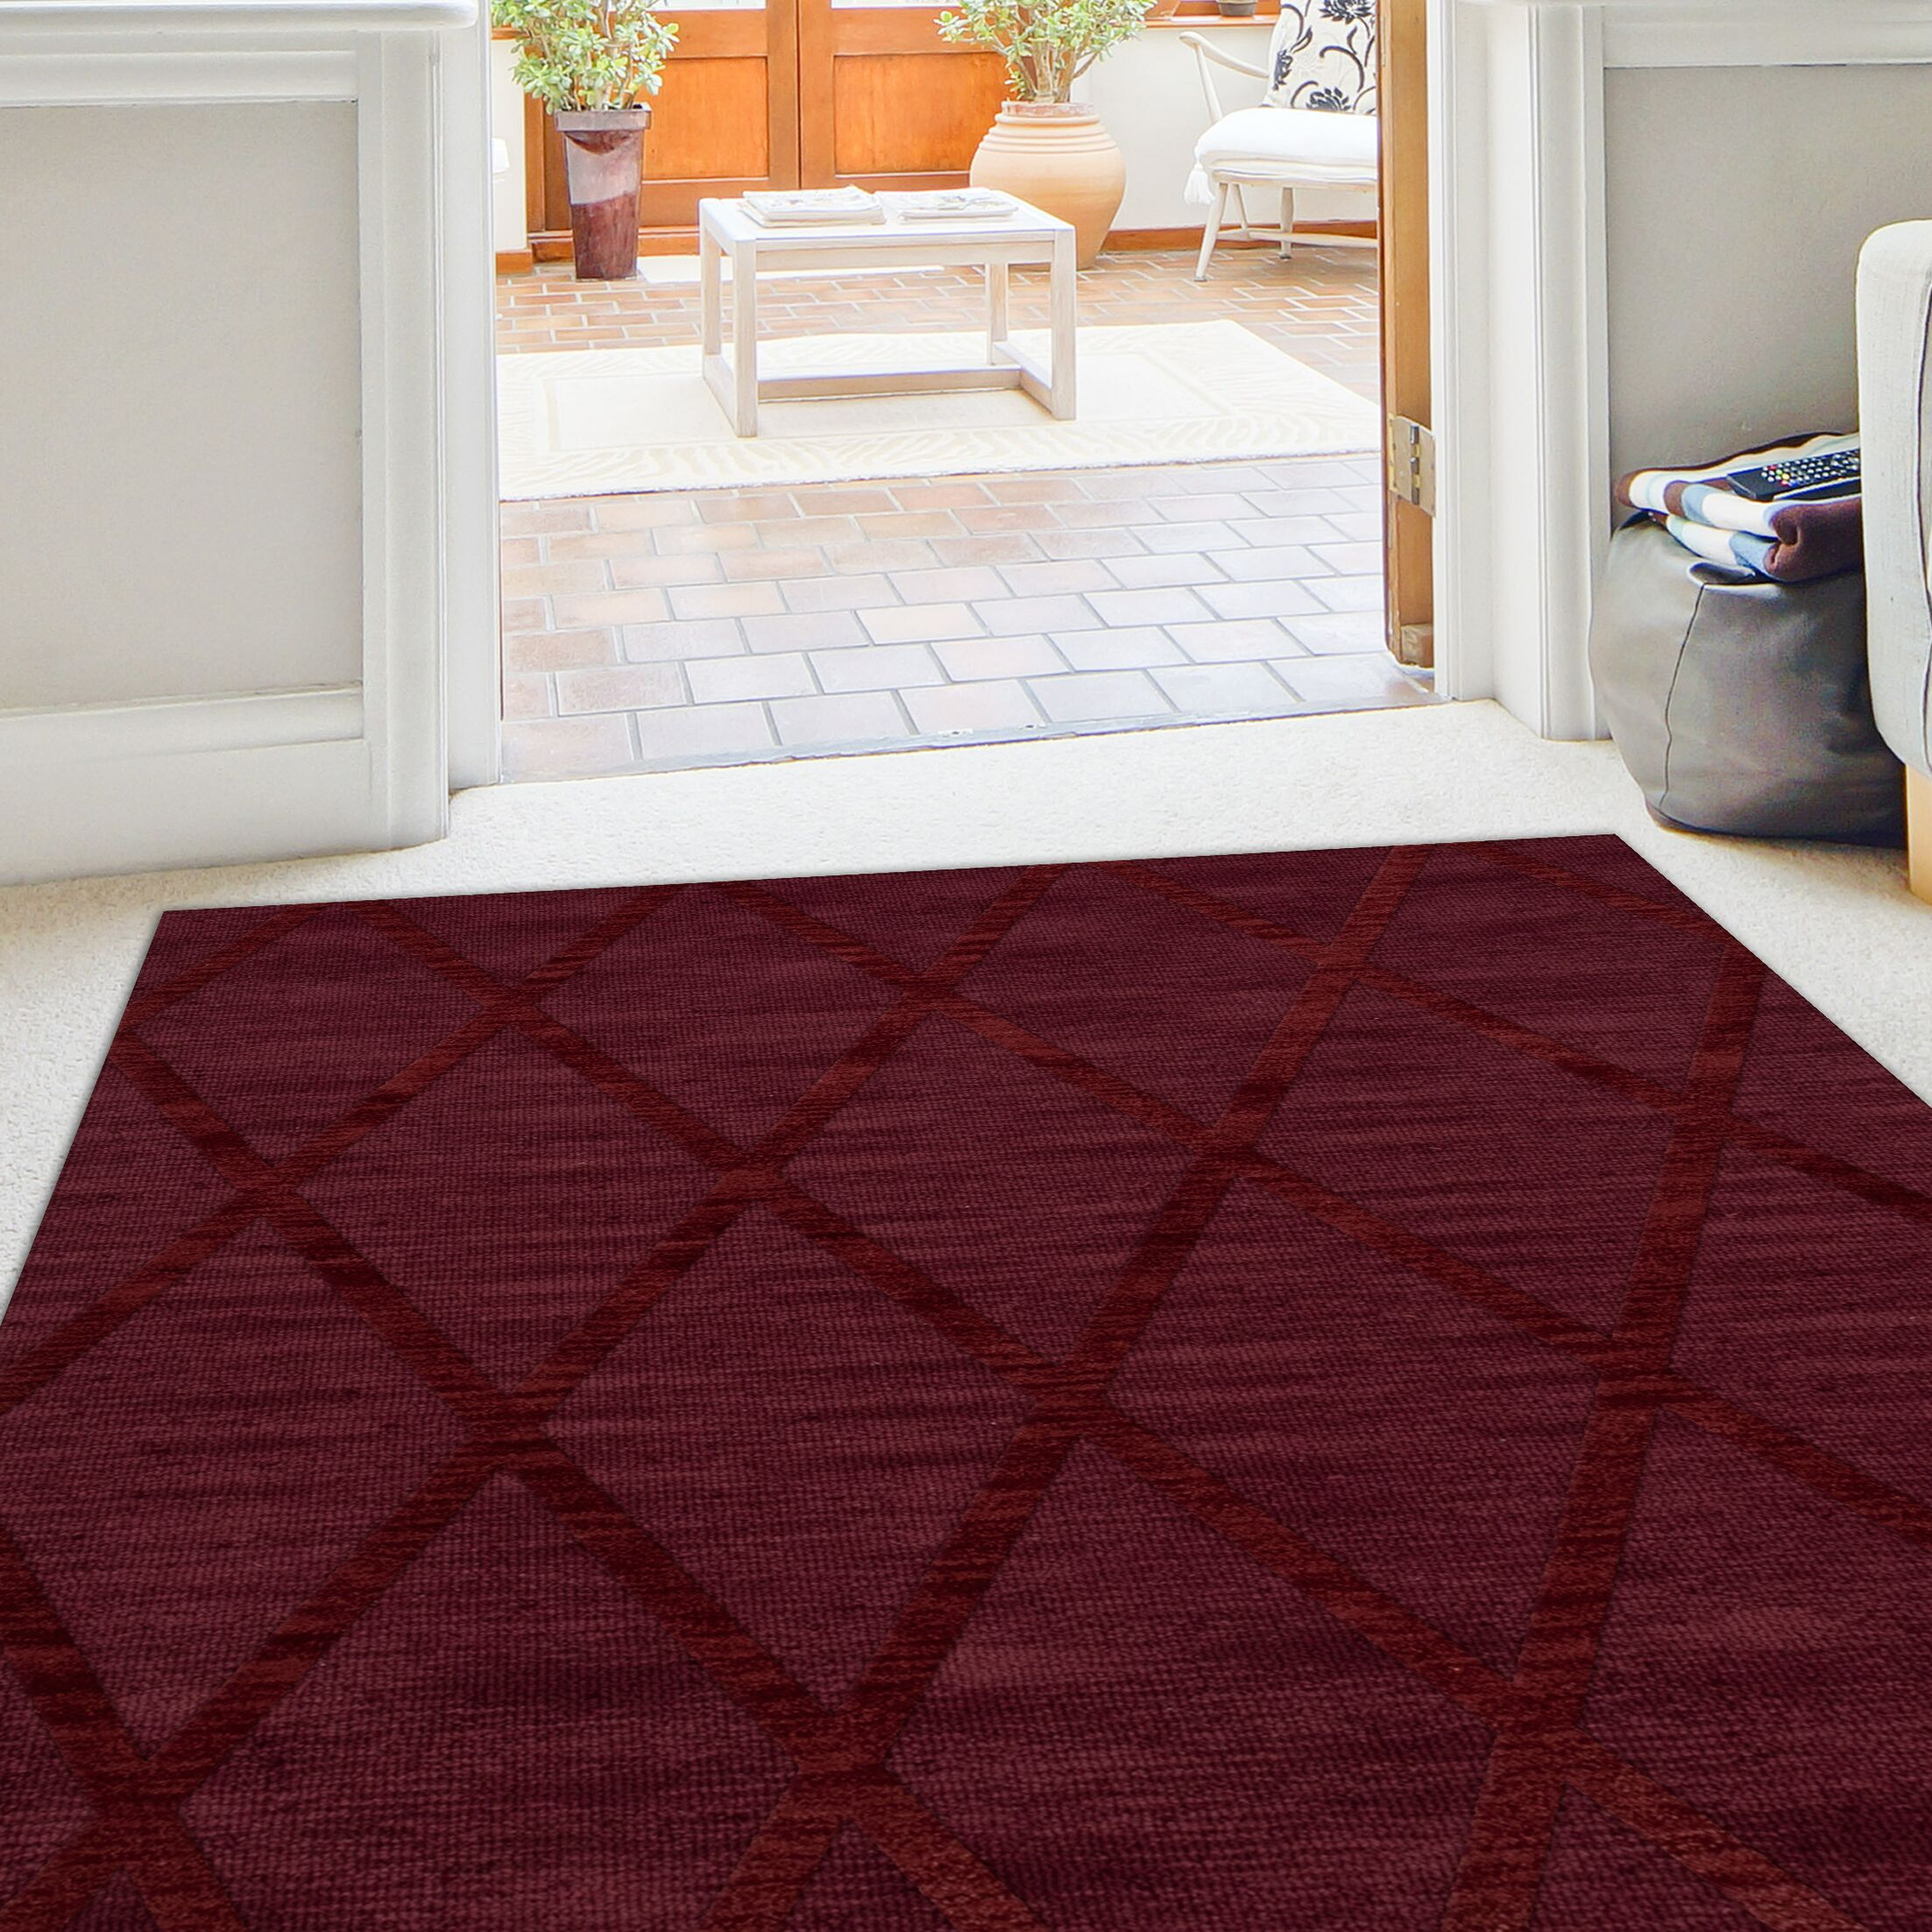 Dover Tufted Wool Burgundy Area Rug Rug Size: Runner 2'6